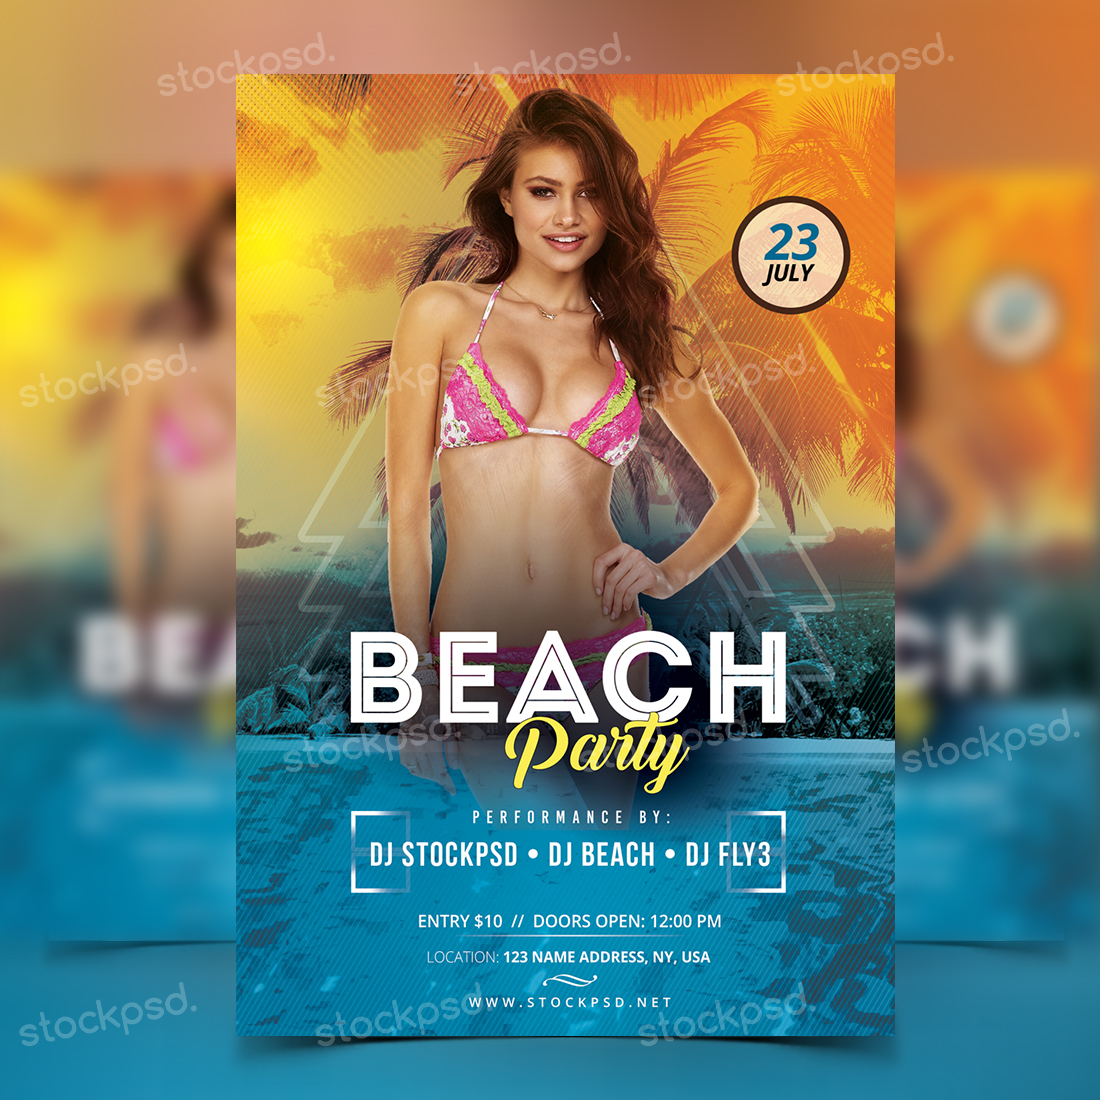 Beach Party – Free PSD Flyer Template